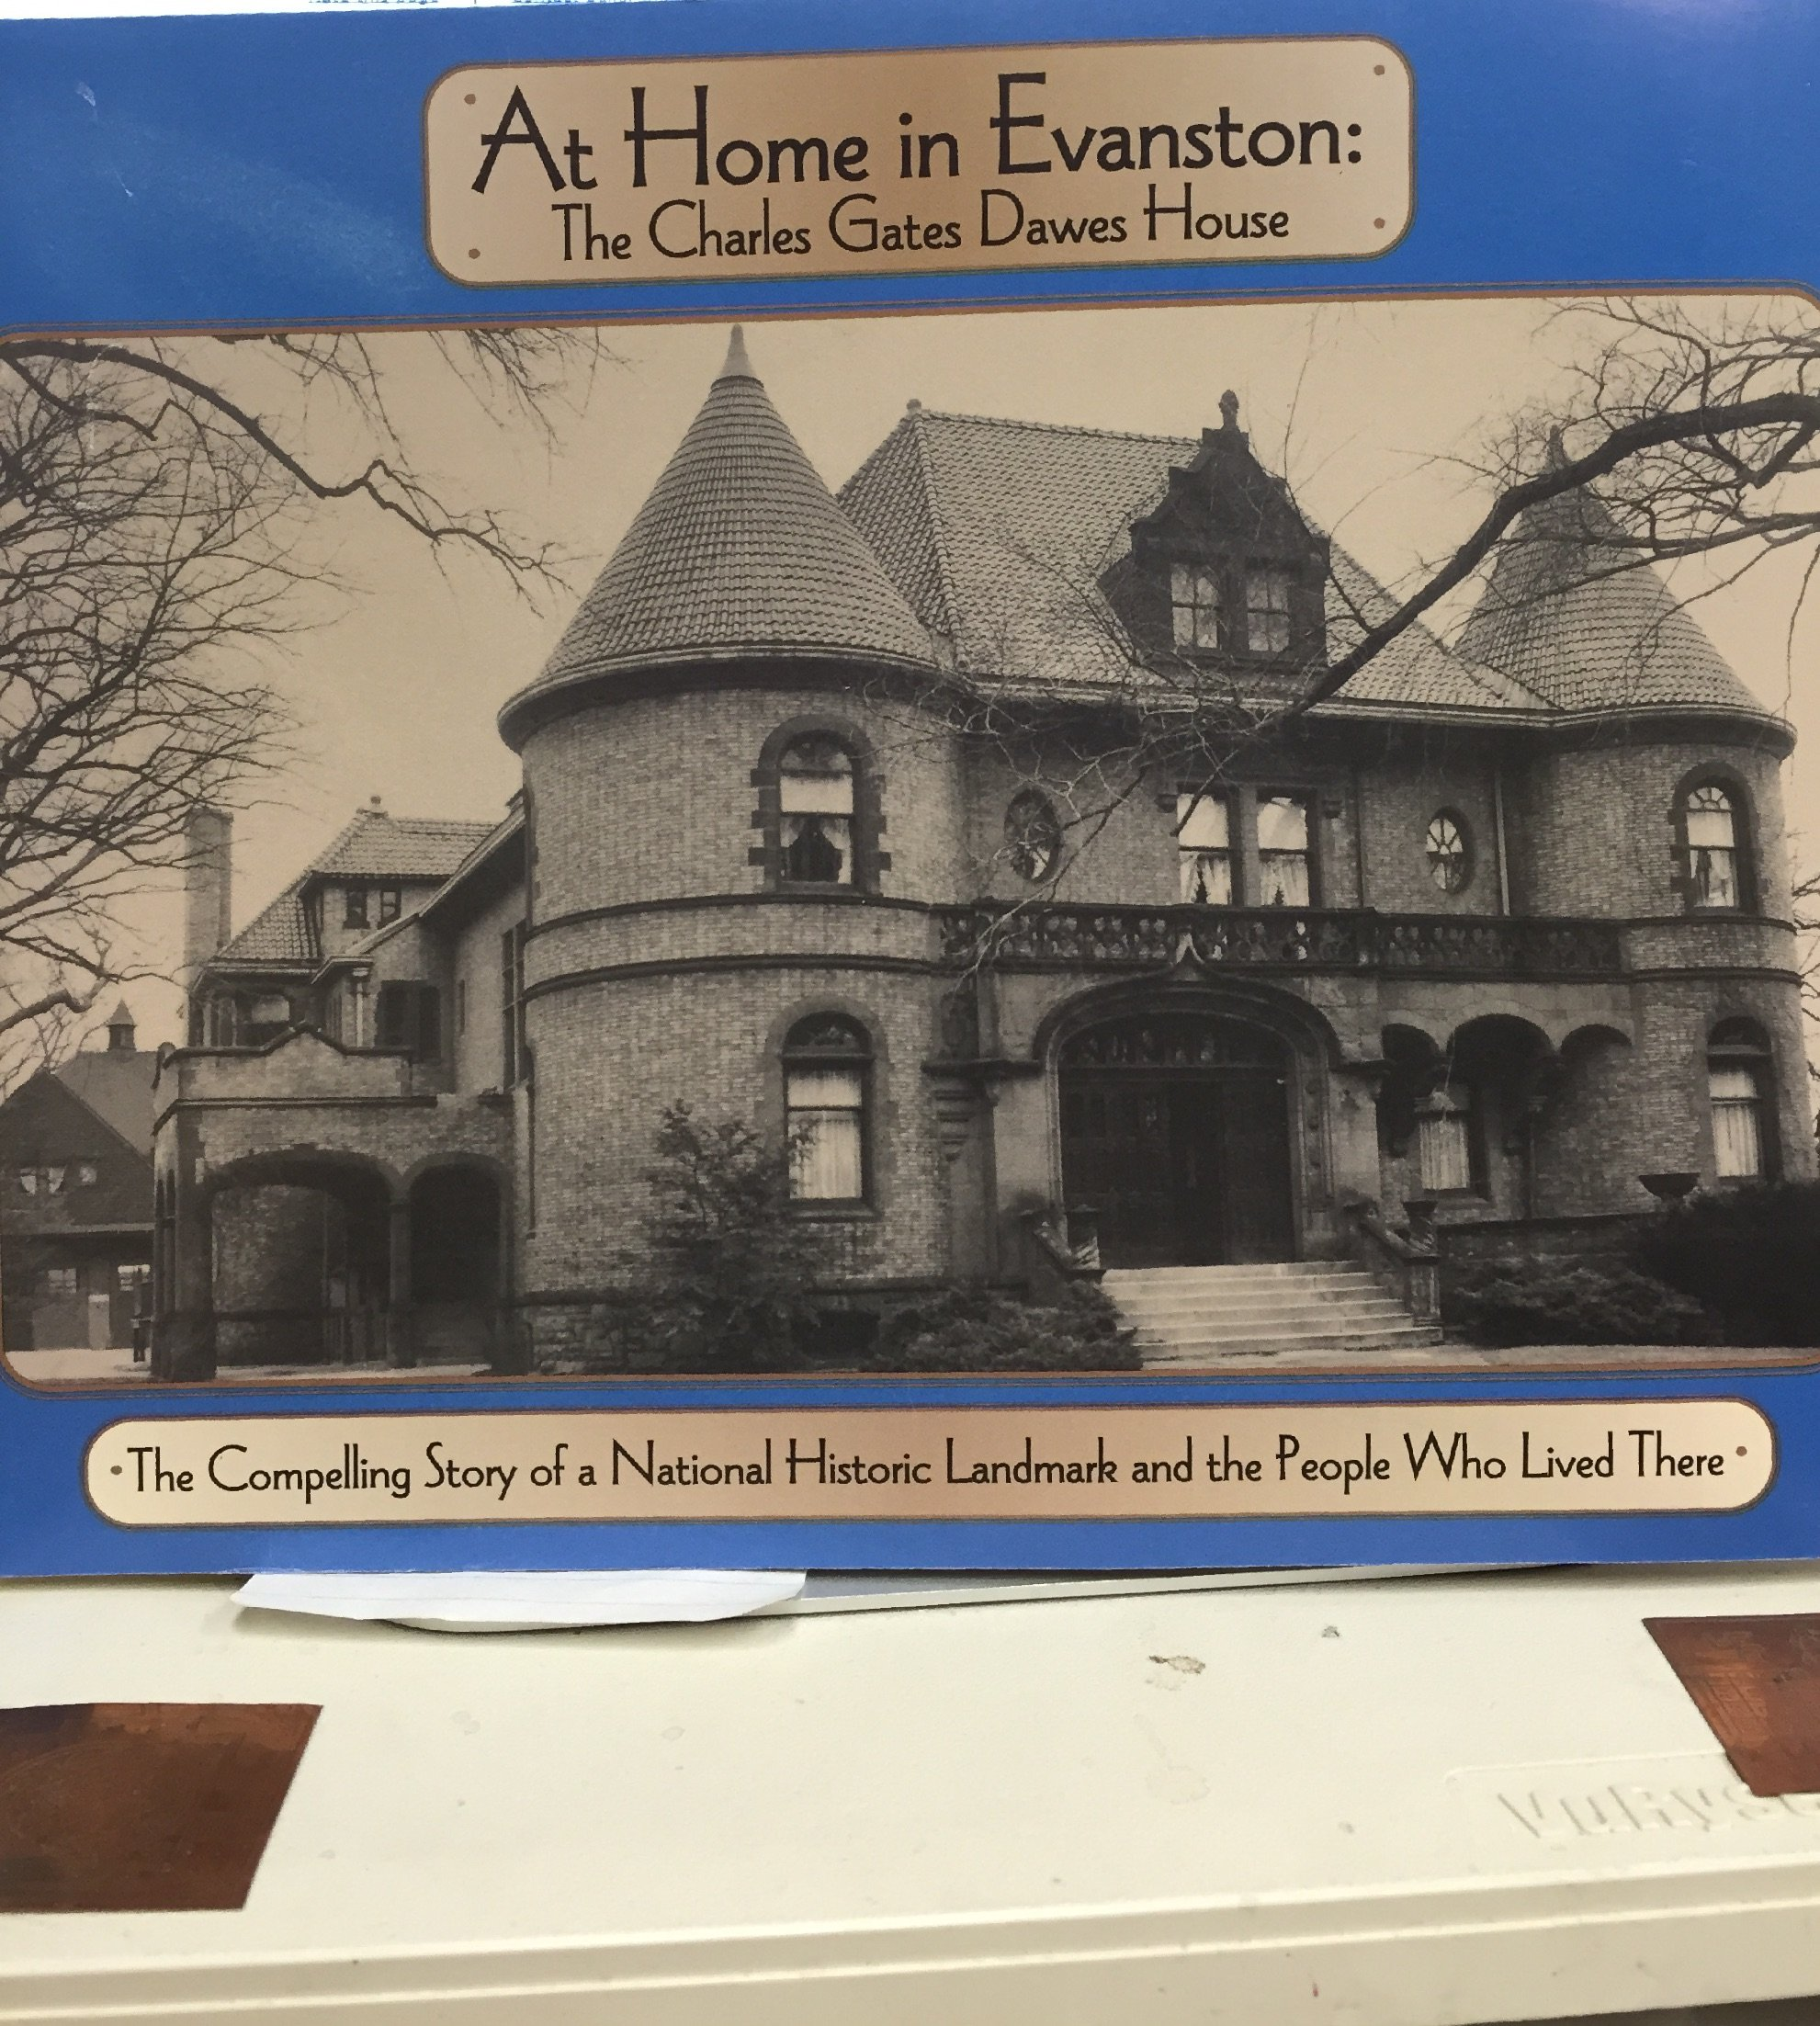 At home in Evanston: The Charles Gates Dawes House : the compelling story of a national historic landmark and the people who lived there ebook